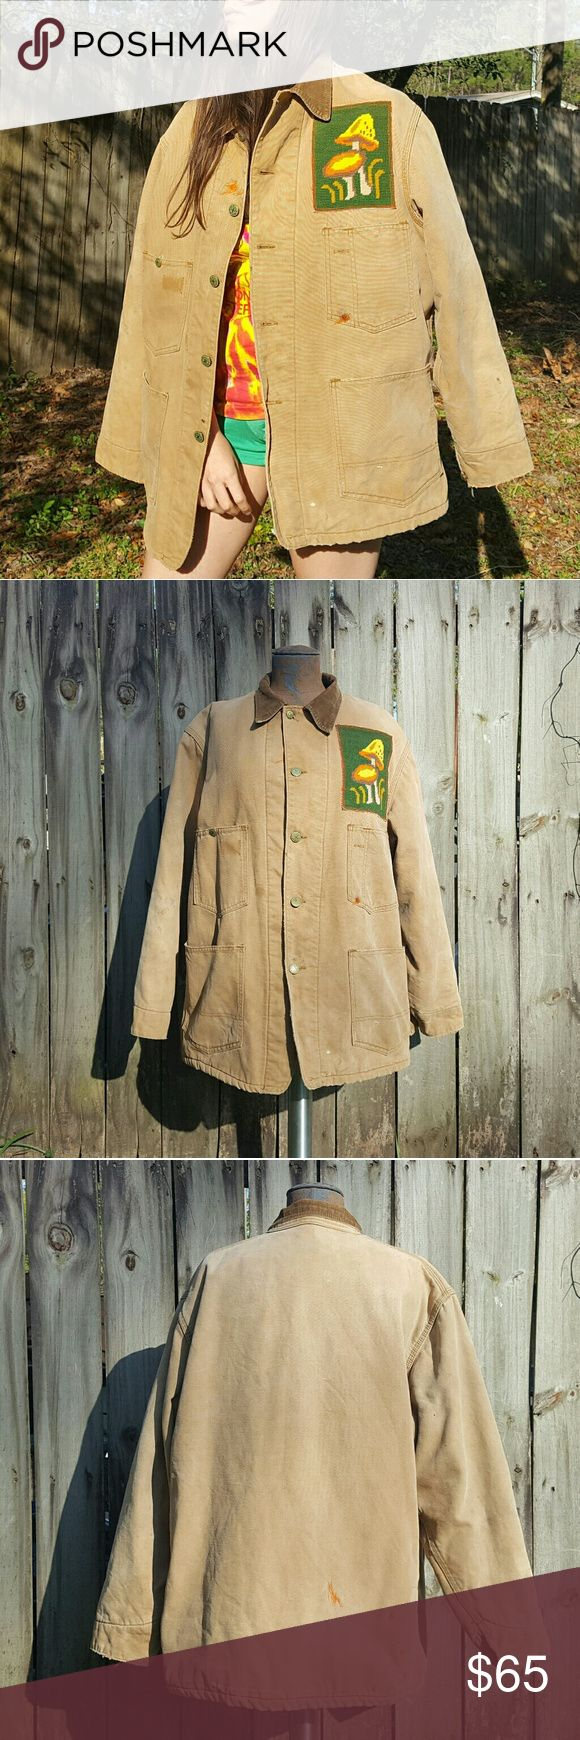 """Distressed mushroom jacket A beat up vintage Oshkosh jacket has been given new life with a vintage mushroom needlepoint patch. Lots of wear and tear and overall distressing gives this piece a unique hippie flair. Made from lined canvas. One of a kind, not a """"perfect"""" piece but you'll look flawless! Fits MANY unisex sizes up to mens XL. Better than Urban Renewal, the purchase of this piece goes to a home seamstress, not a corporation. Shiloh Lives Jackets & Coats Military & Field"""